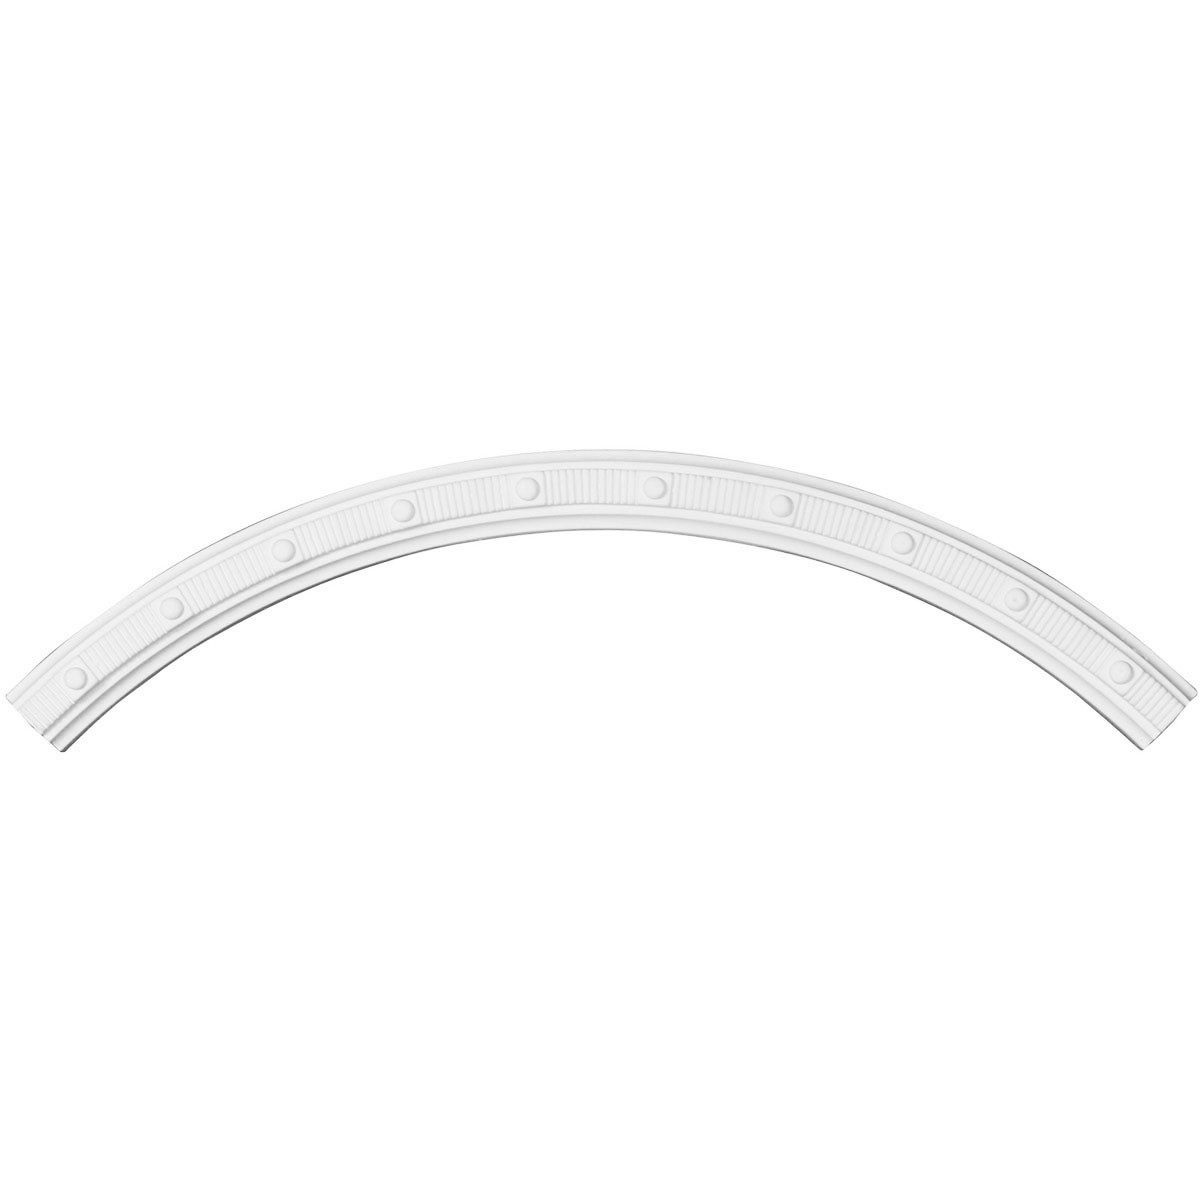 """EM-CR26SE - 26""""OD x 23 5/8""""ID x 1 1/4""""W x 3/4""""P Seville Ceiling Ring (1/4 of complete circle)"""